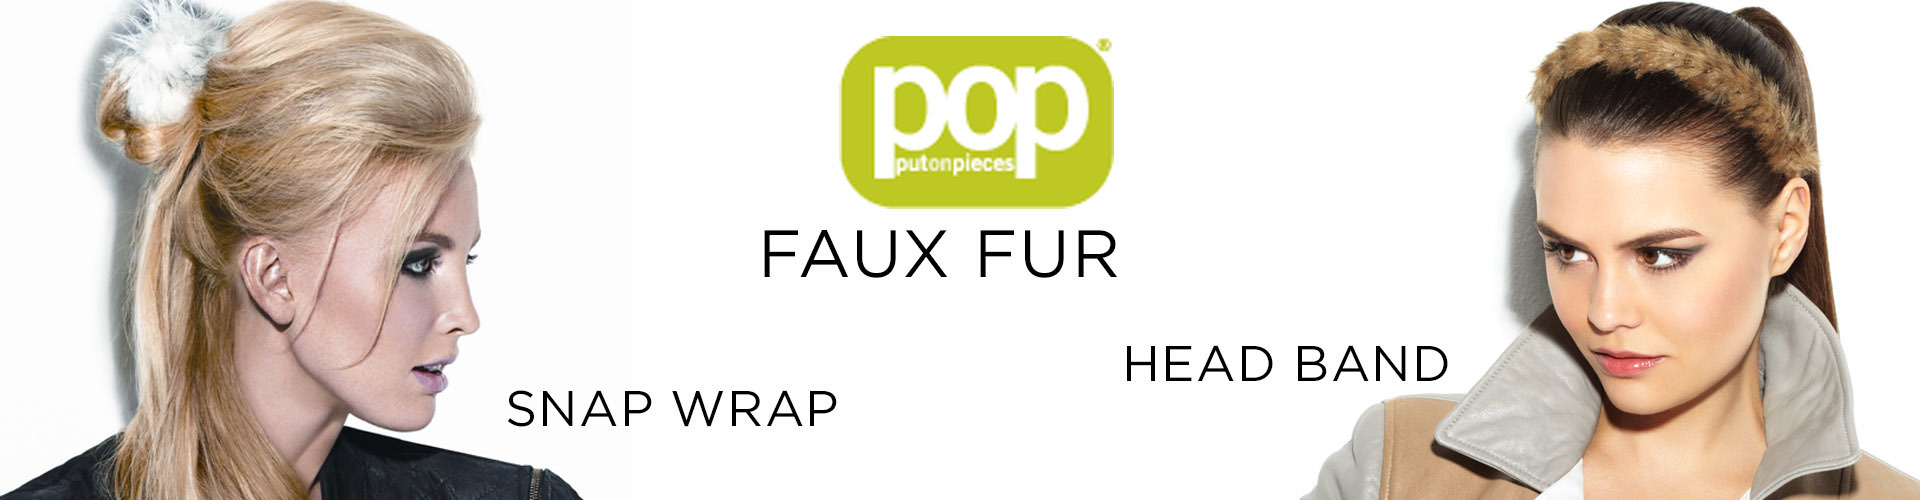 Faux fur Head Band and Snap Wrap (© Great Lengths)